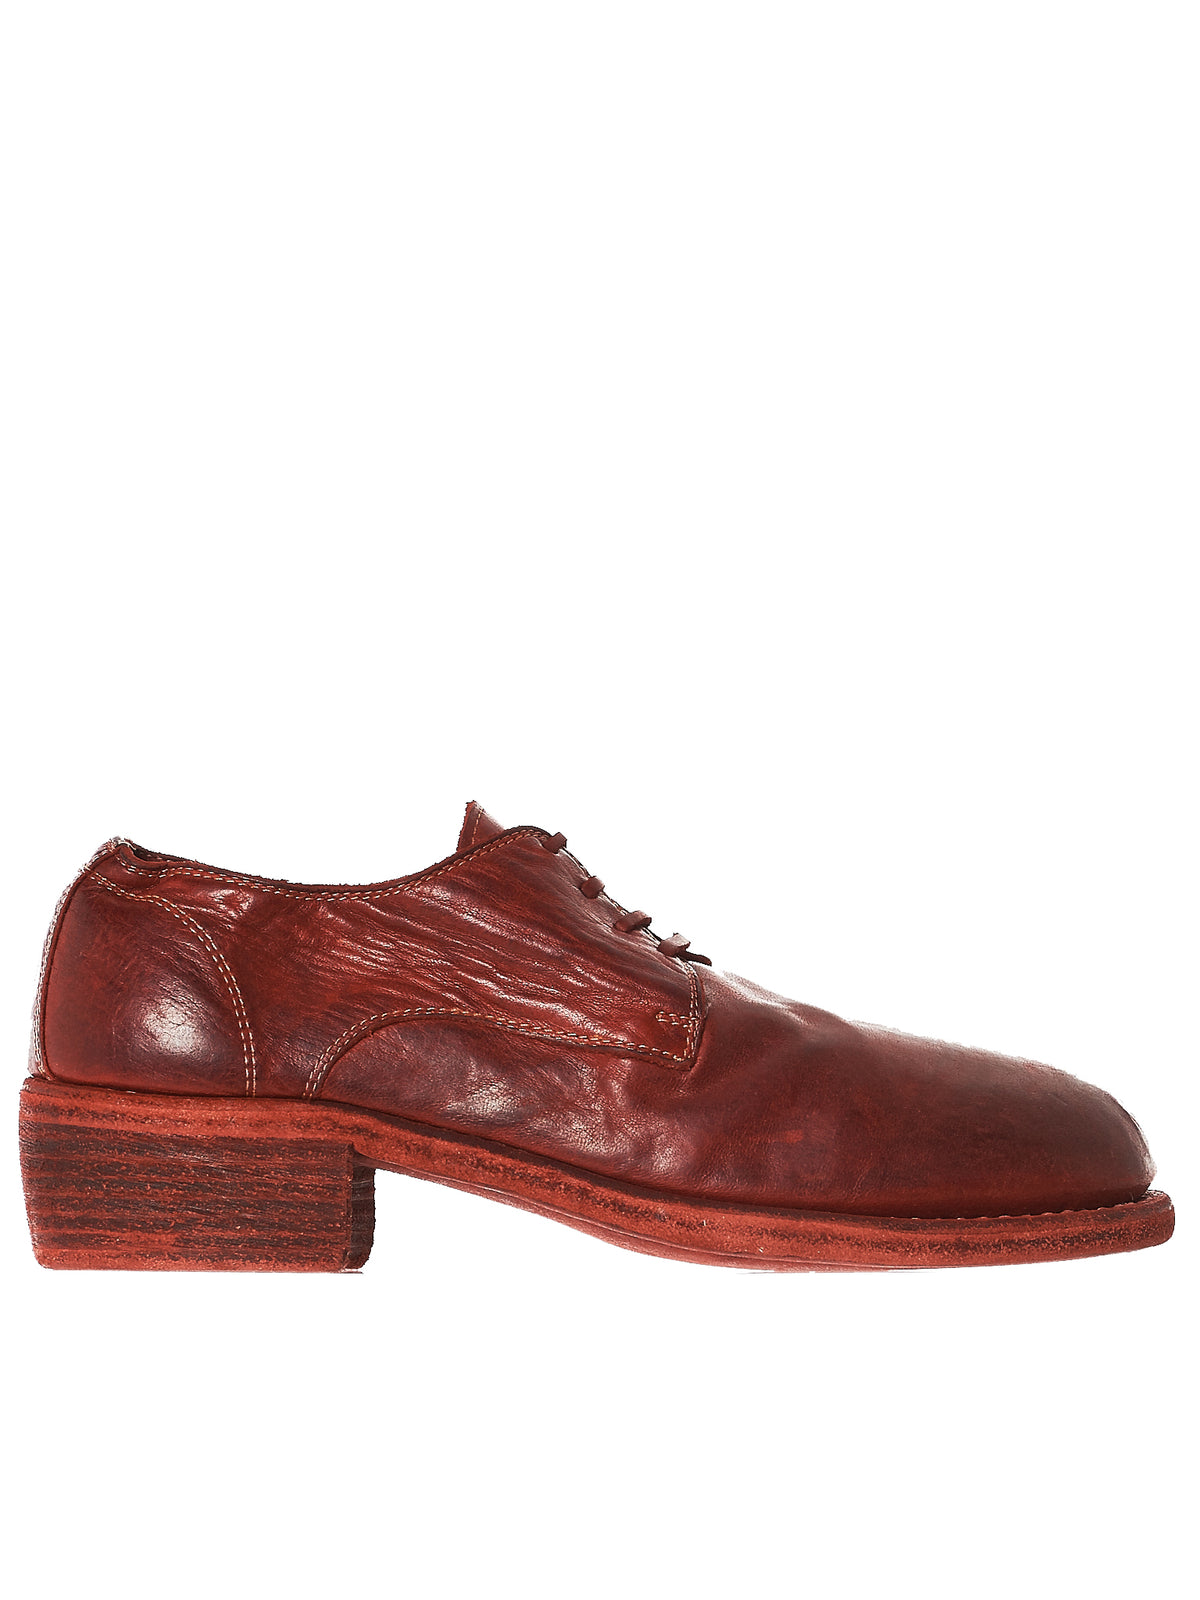 Angled Derby Shoes (792-SOFT-HORSE-FG-1006T)